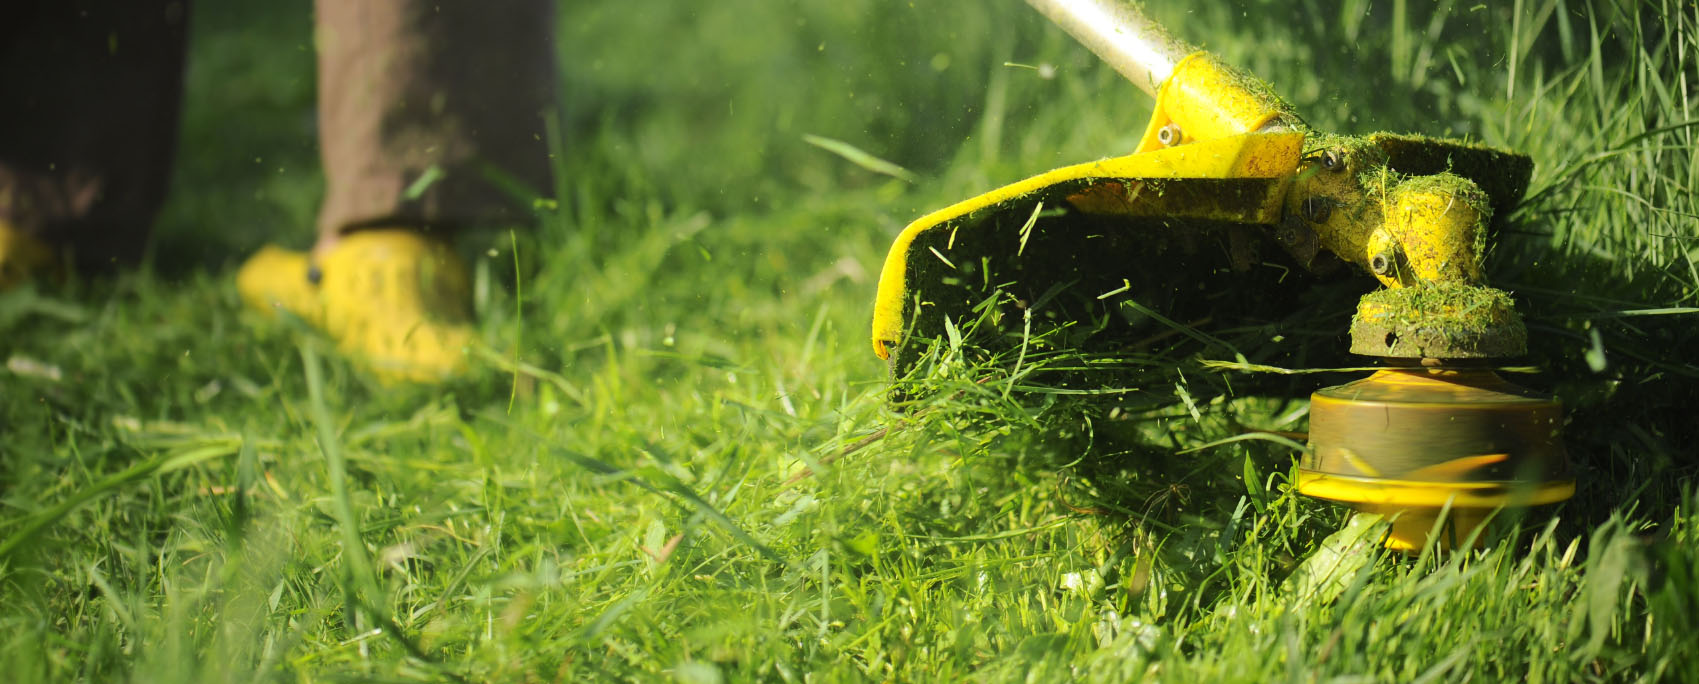 Commercial landscape maintenance in college station round for Garden care maintenance